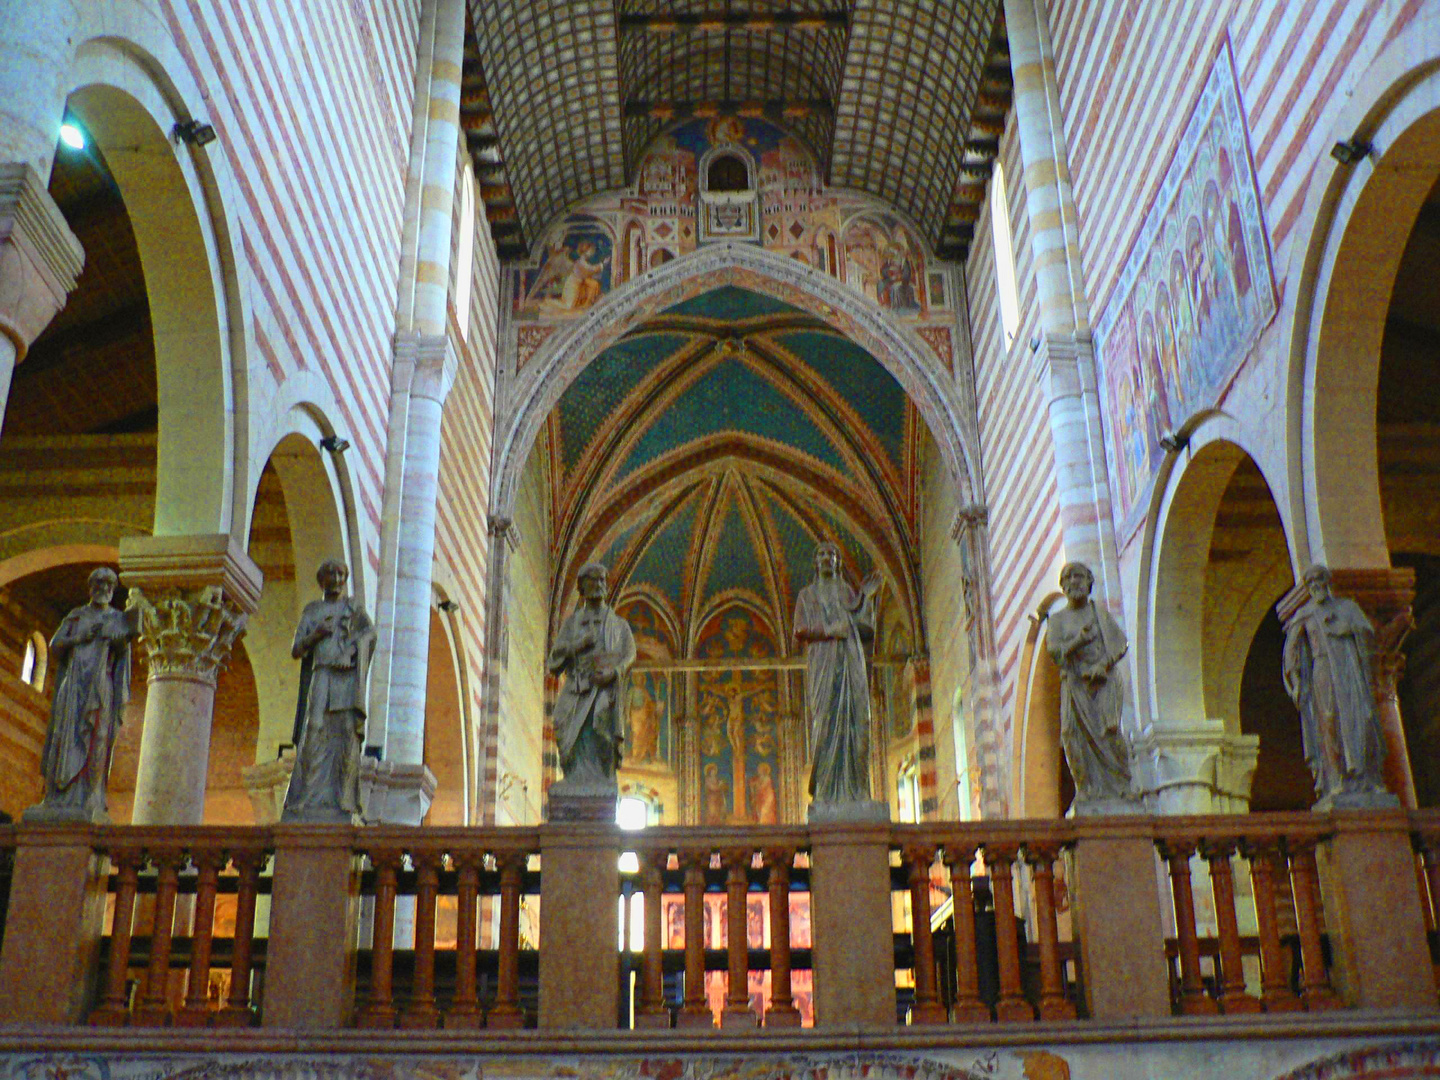 Inside the Basilica Di San Zeno in Verona